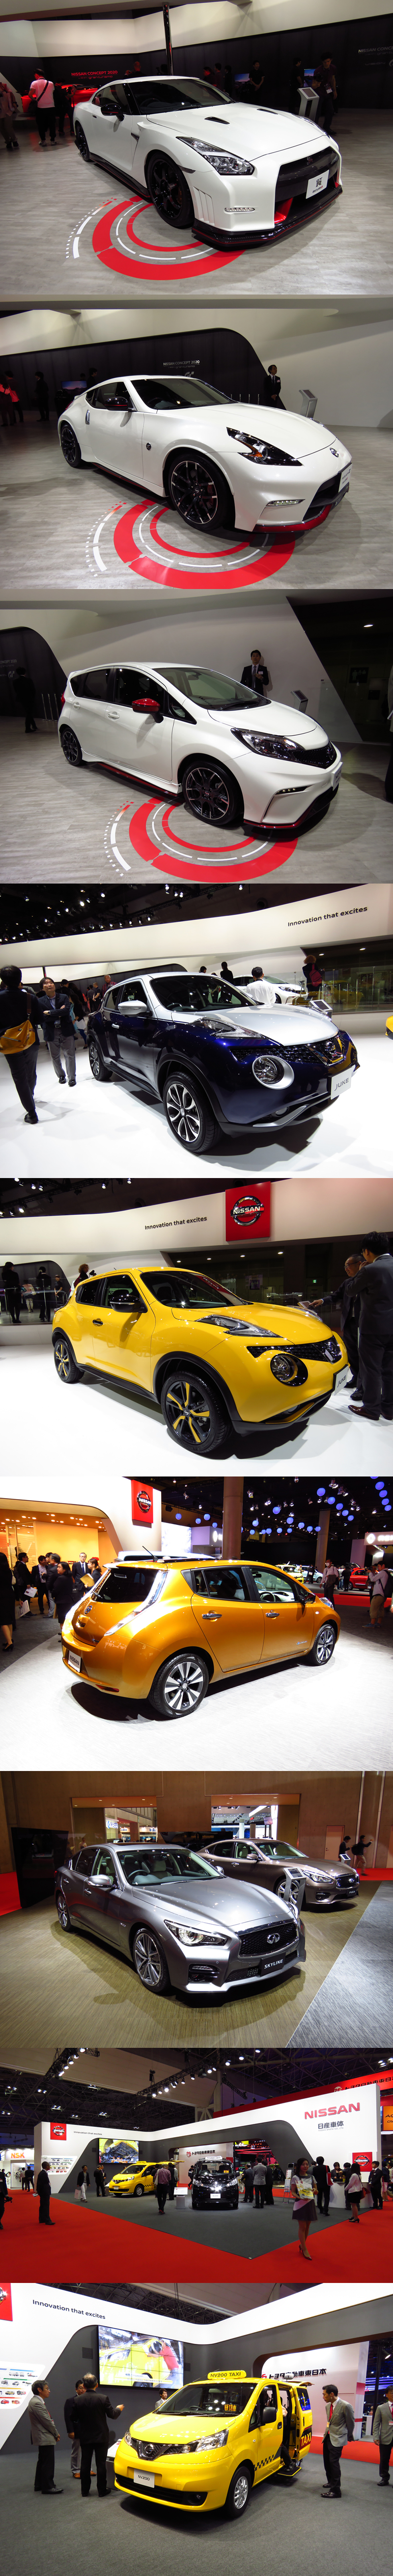 2015_10_28_TMS_Nissan_05